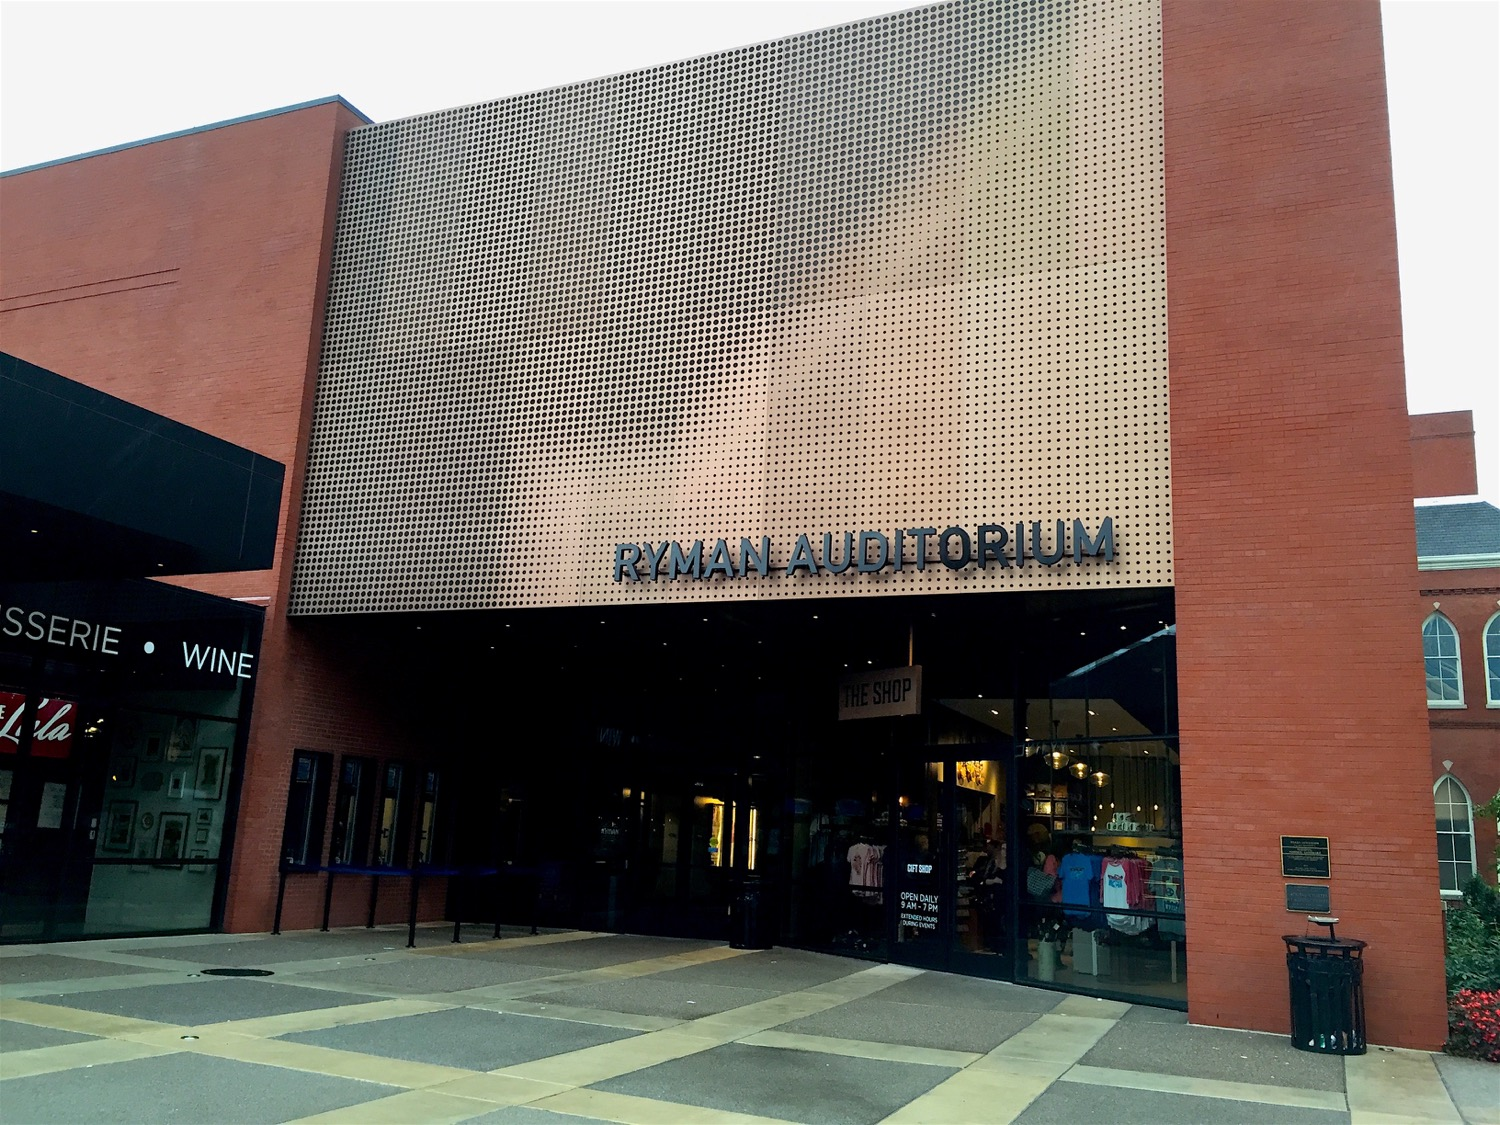 The new entrance to the Ryman, completed in 2015